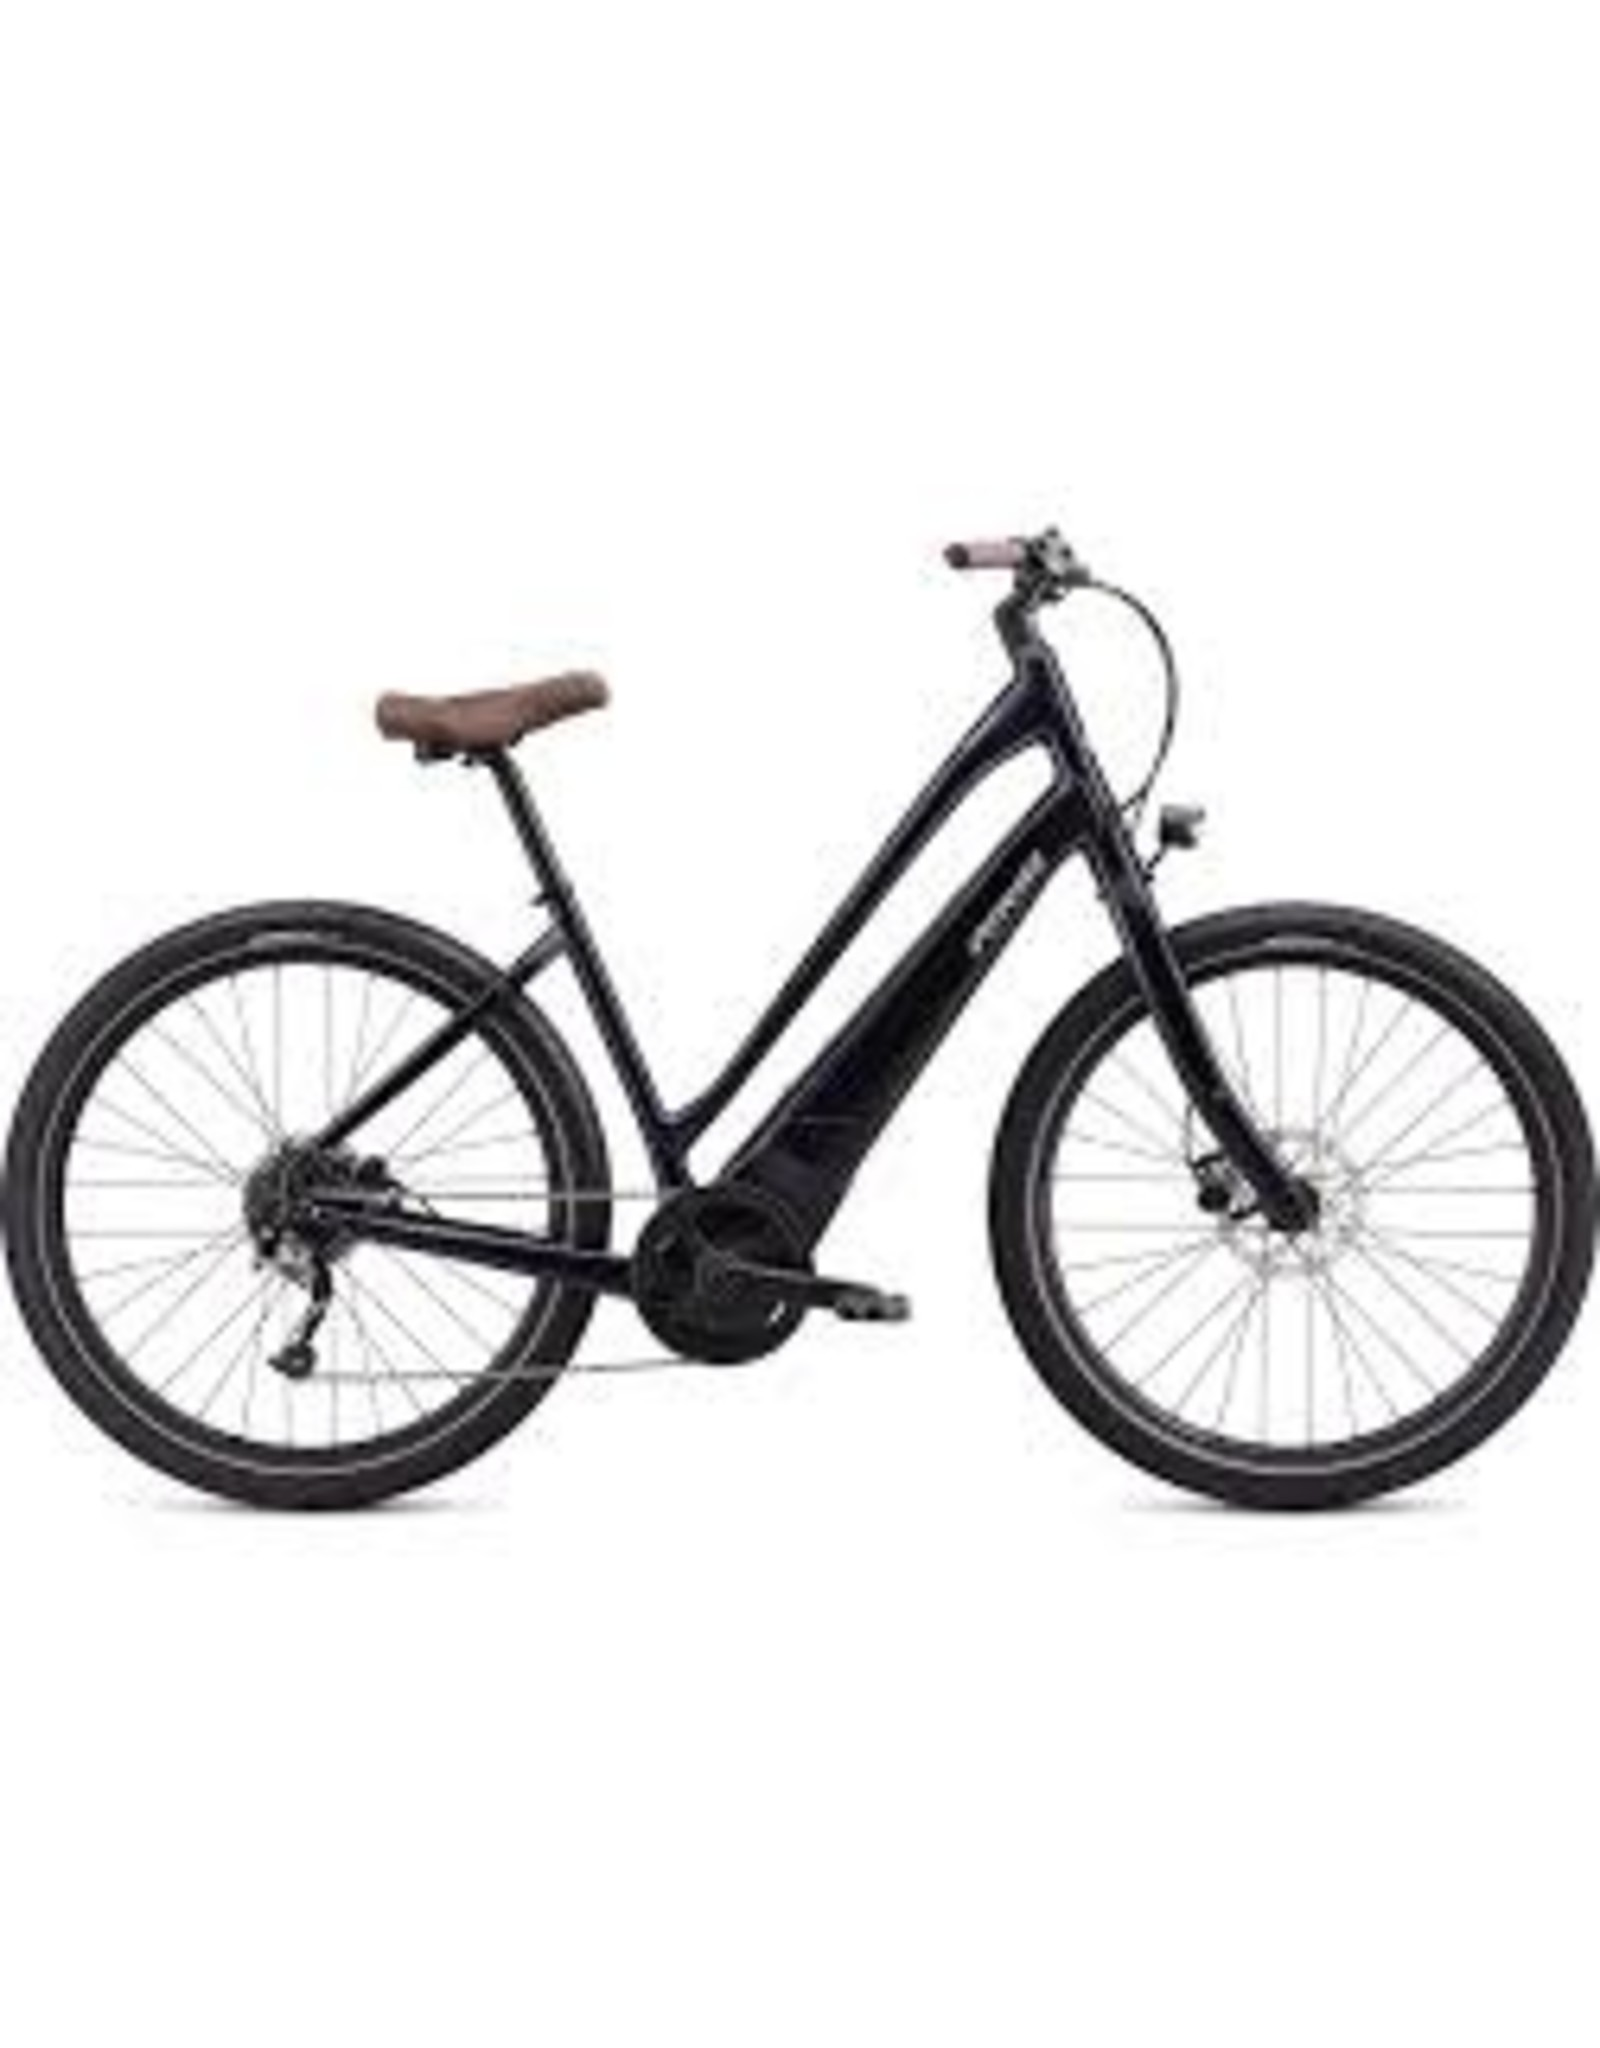 Specialized COMO 3.0 LOW ENTRY 650B NRBLK/BLUGSTPRL/DOVGRY SMALL  (DEMO) MSRP:$3000.00DEMO PRICE: $2550.00